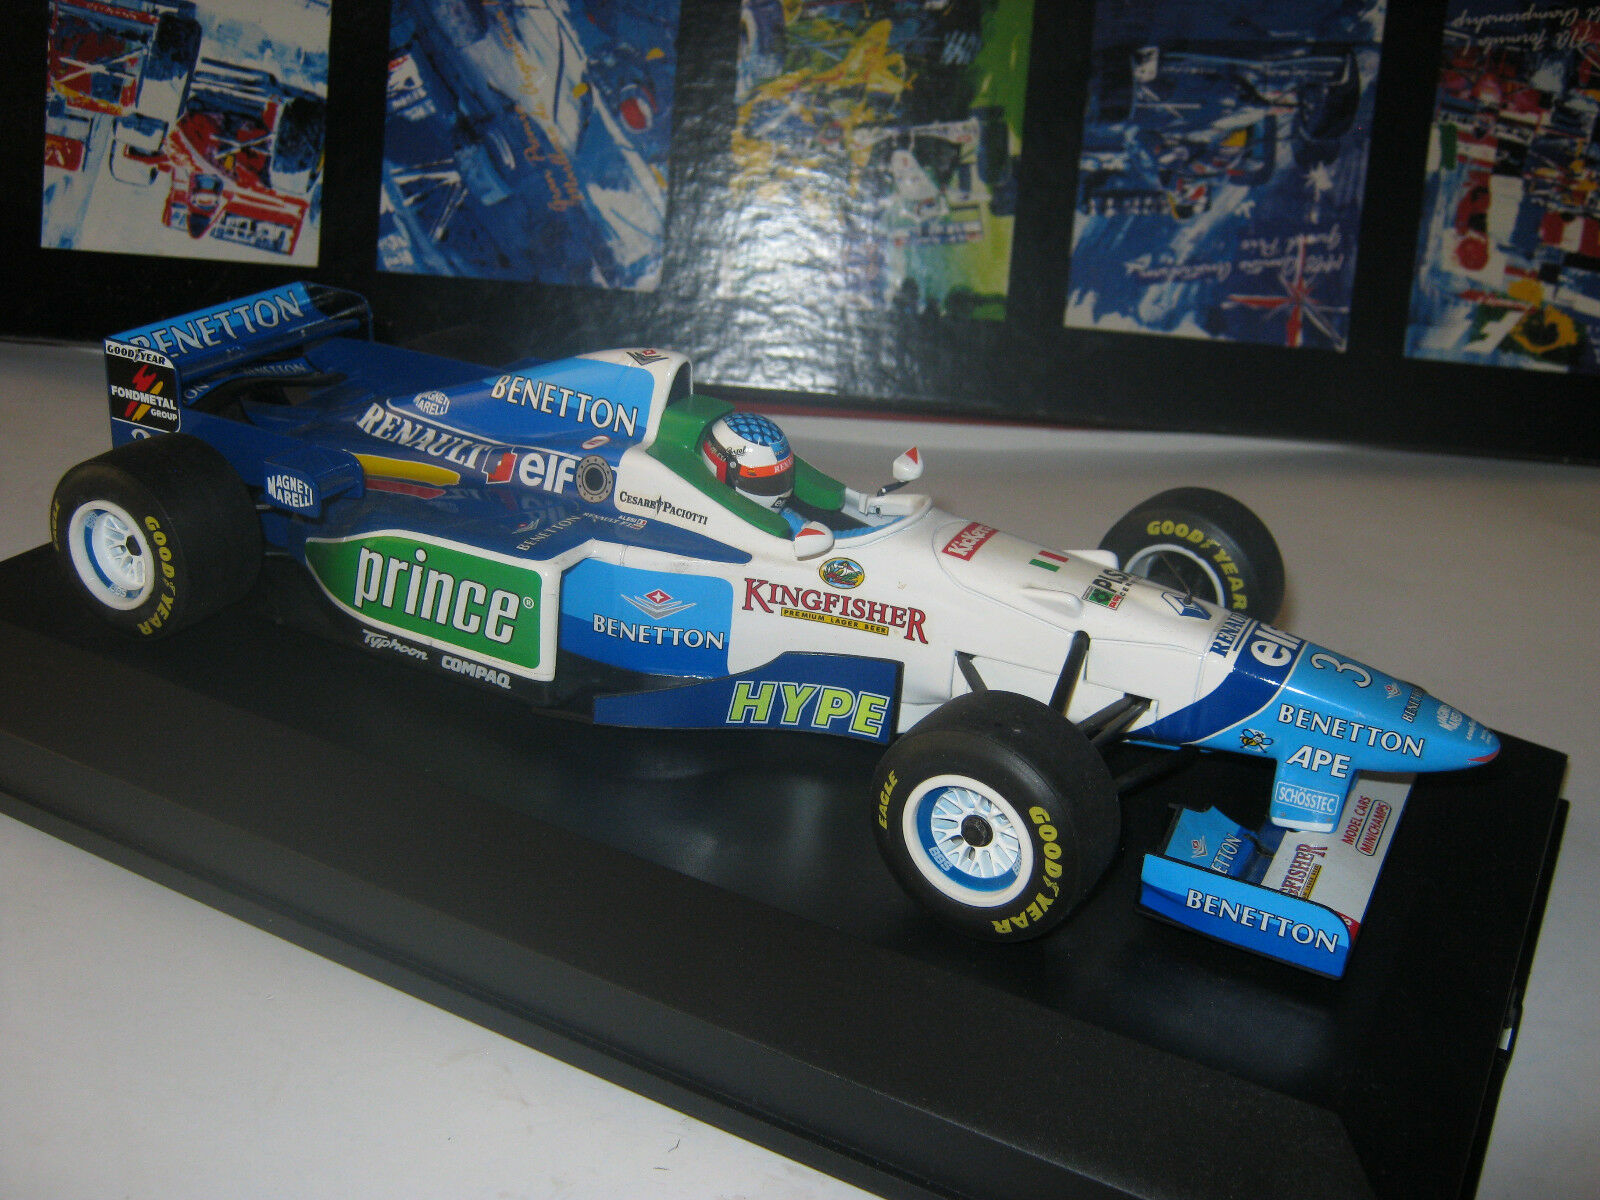 1 18 Benetton Renault b196 J. ALESI 1996 Minichamps  in BRANDnouveau Showcase Top  80% de réduction